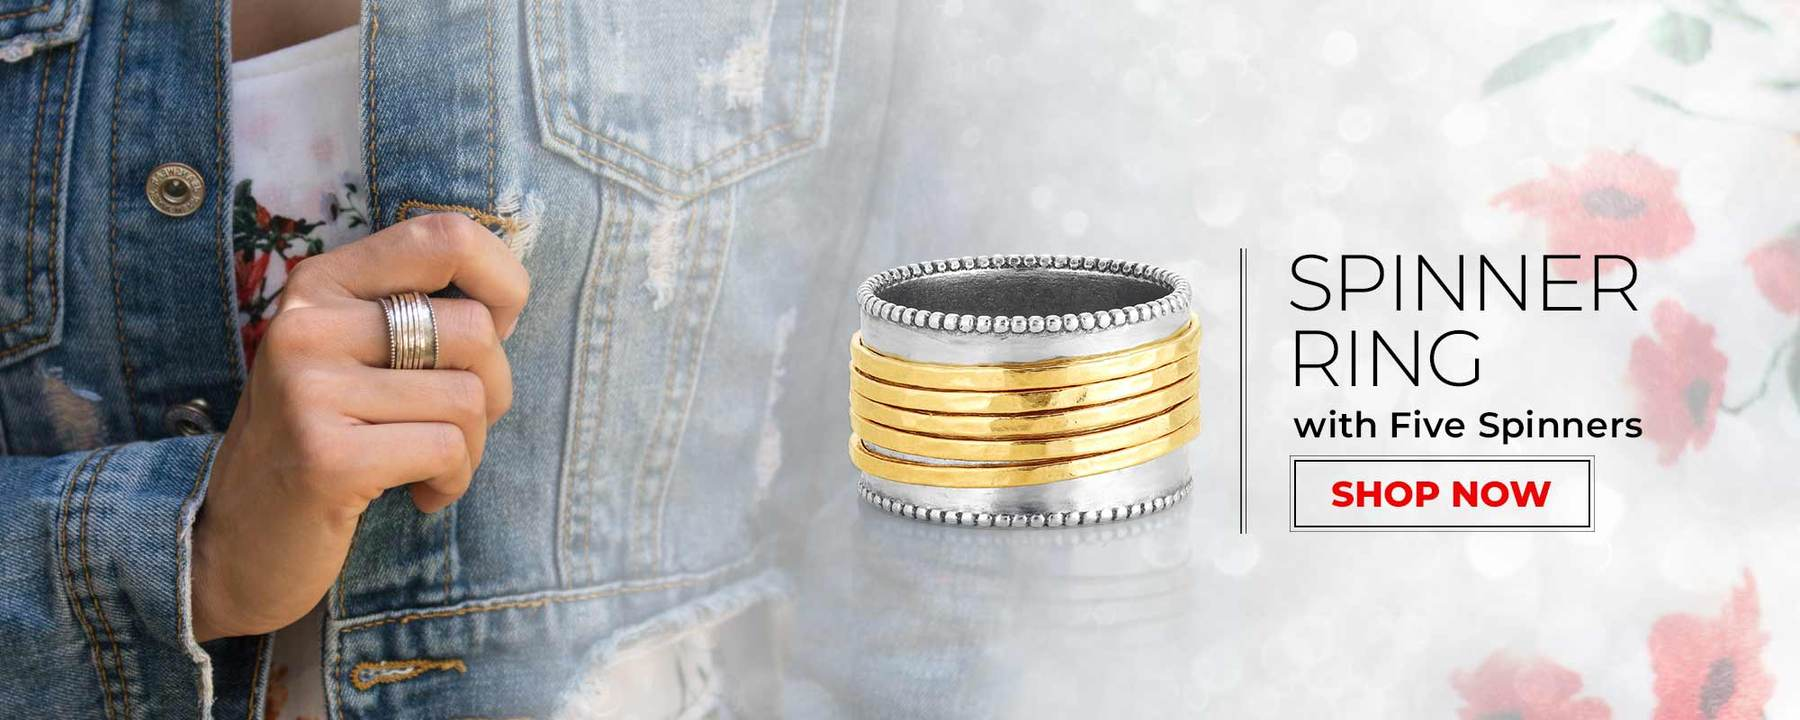 https://www.dannynewfeld.com/collections/best-sellers/products/silver-spinner-ring-with-choice-of-plated-spinners